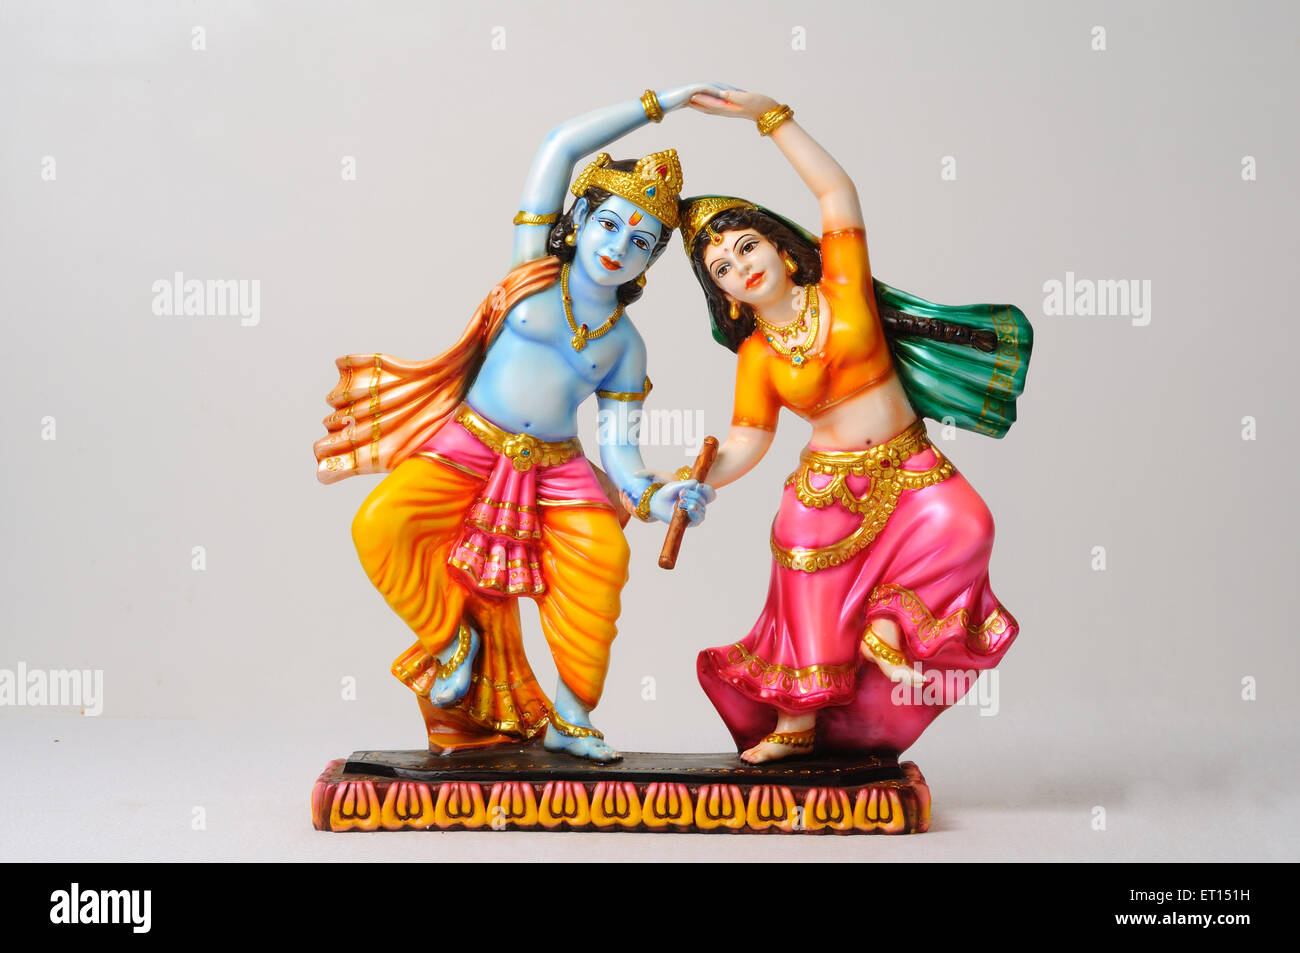 clay statue of god and goddess radha and krishna ET151H